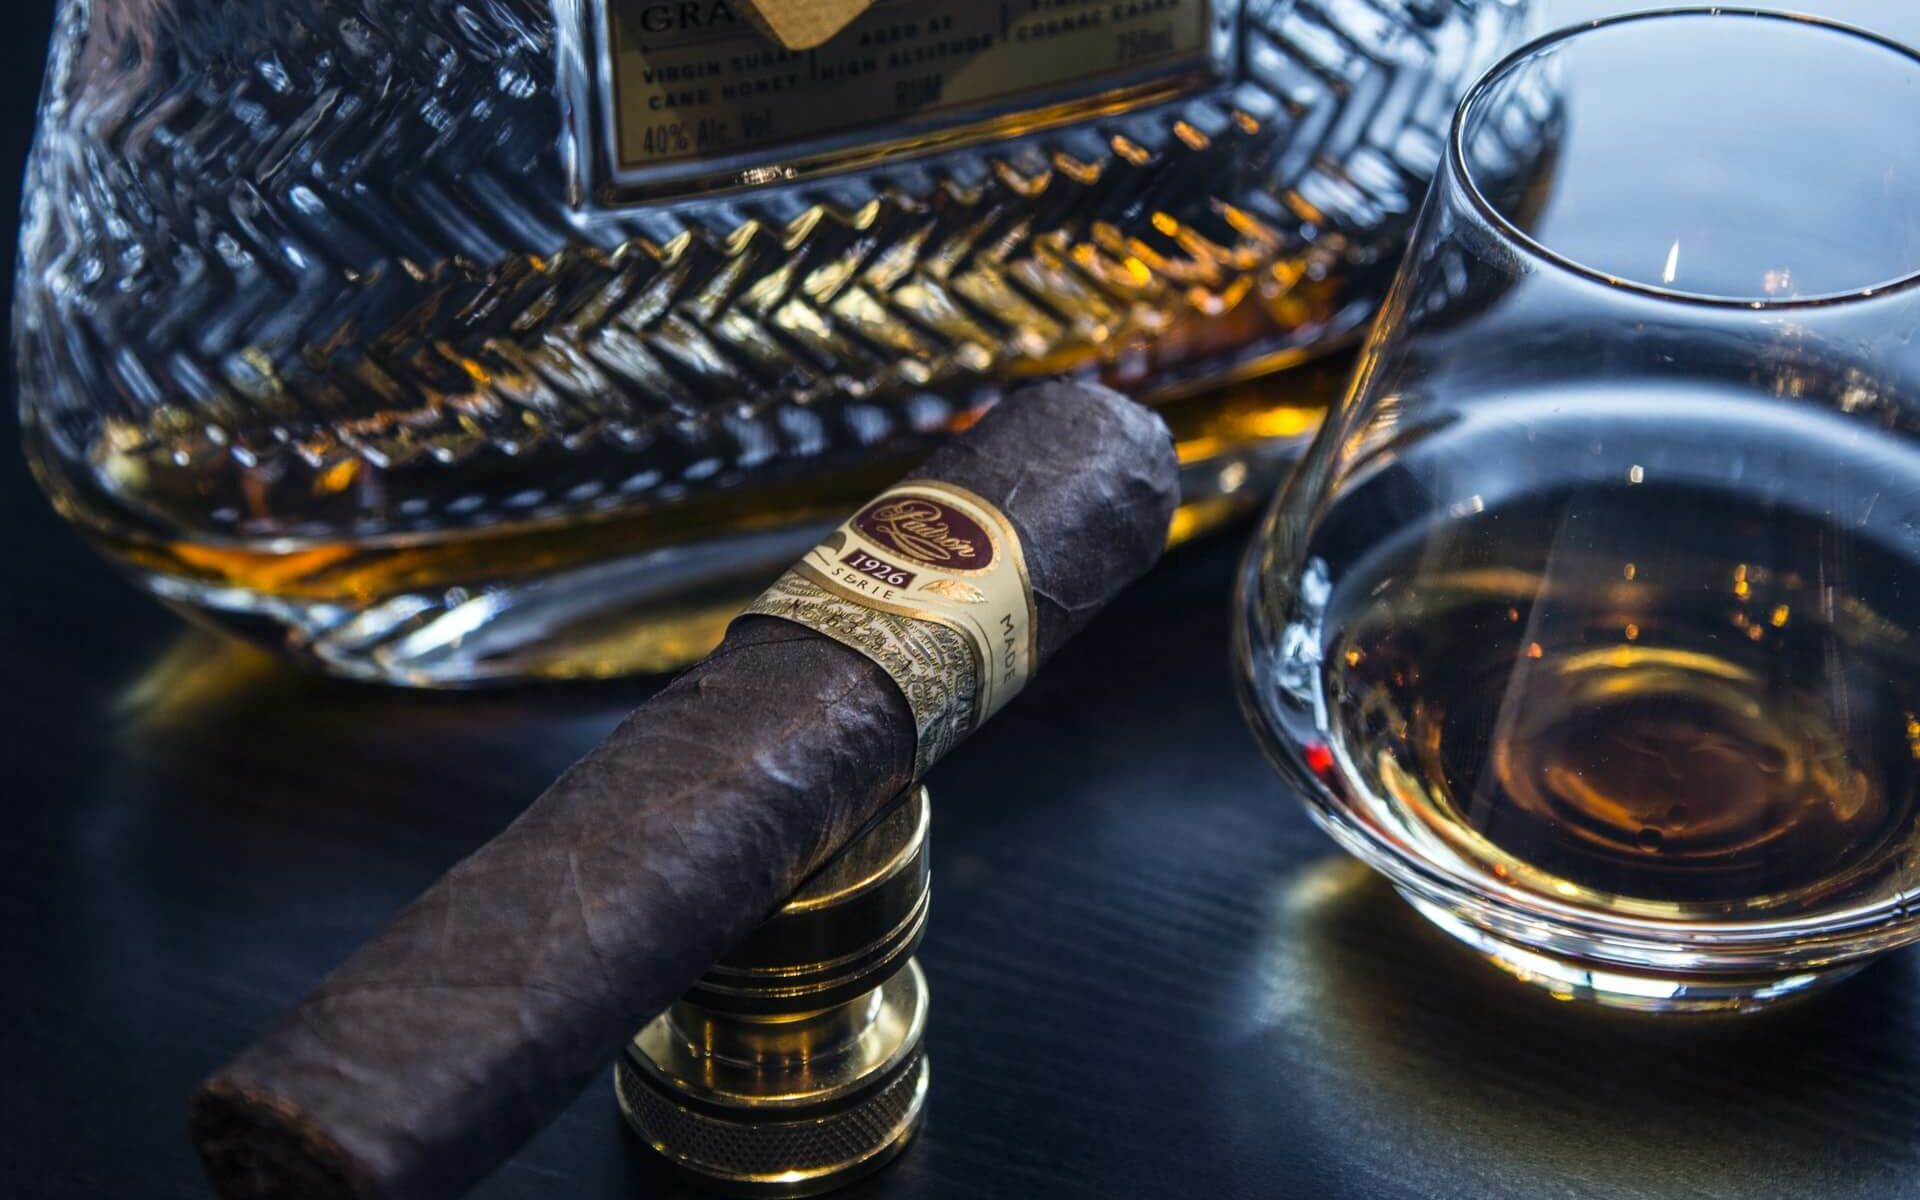 A hand rolled Bahamian cigar sits next to a glass of rum on a dark wooden table